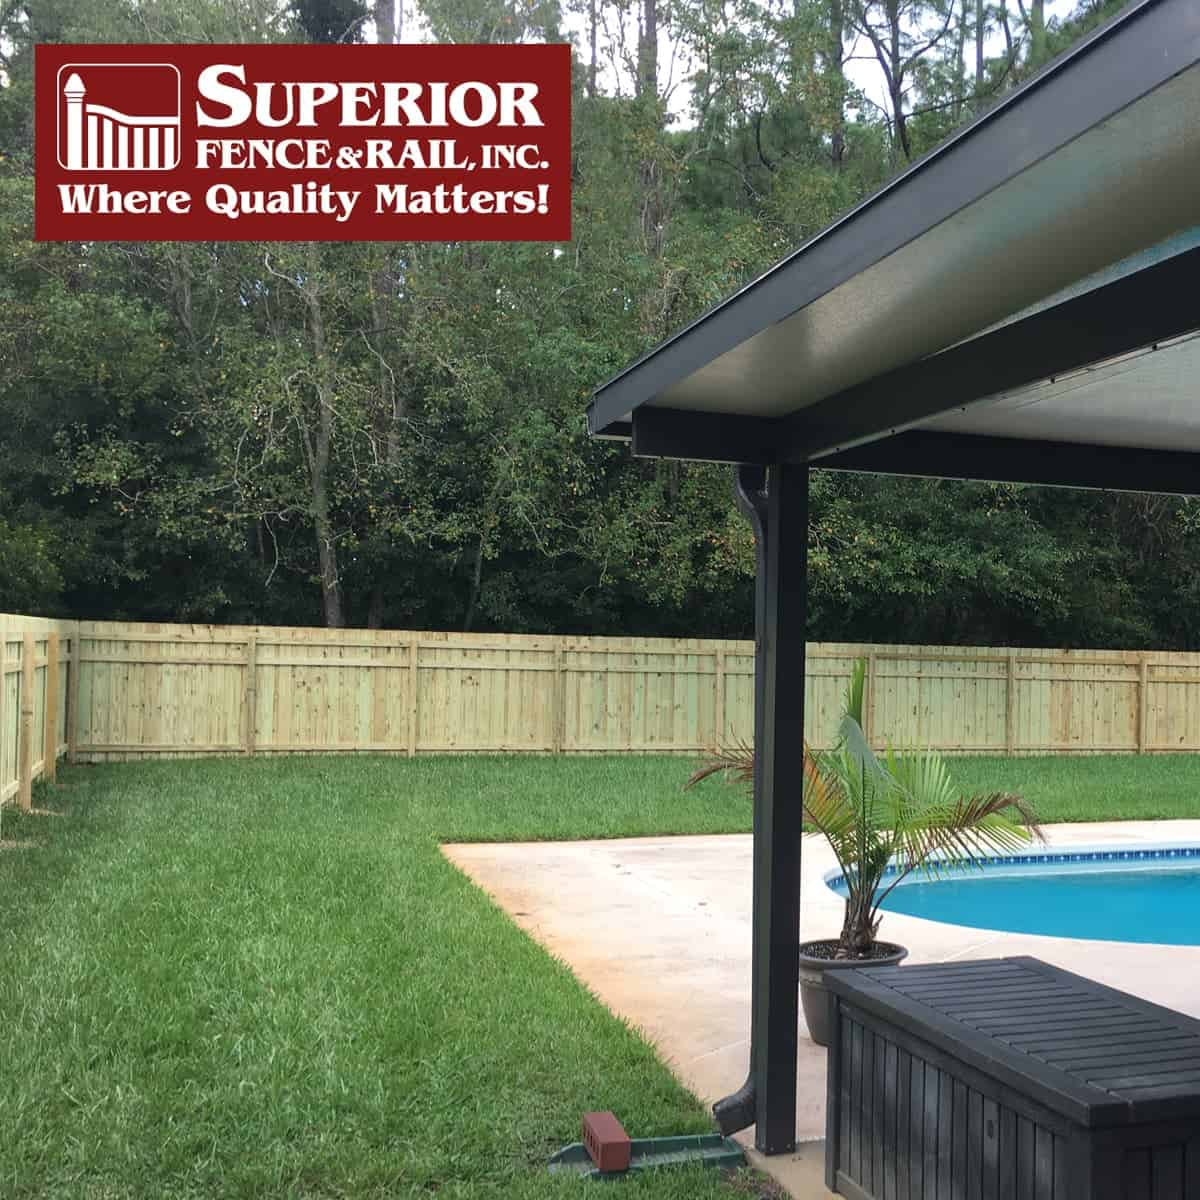 Council Bluffs fence company contractor